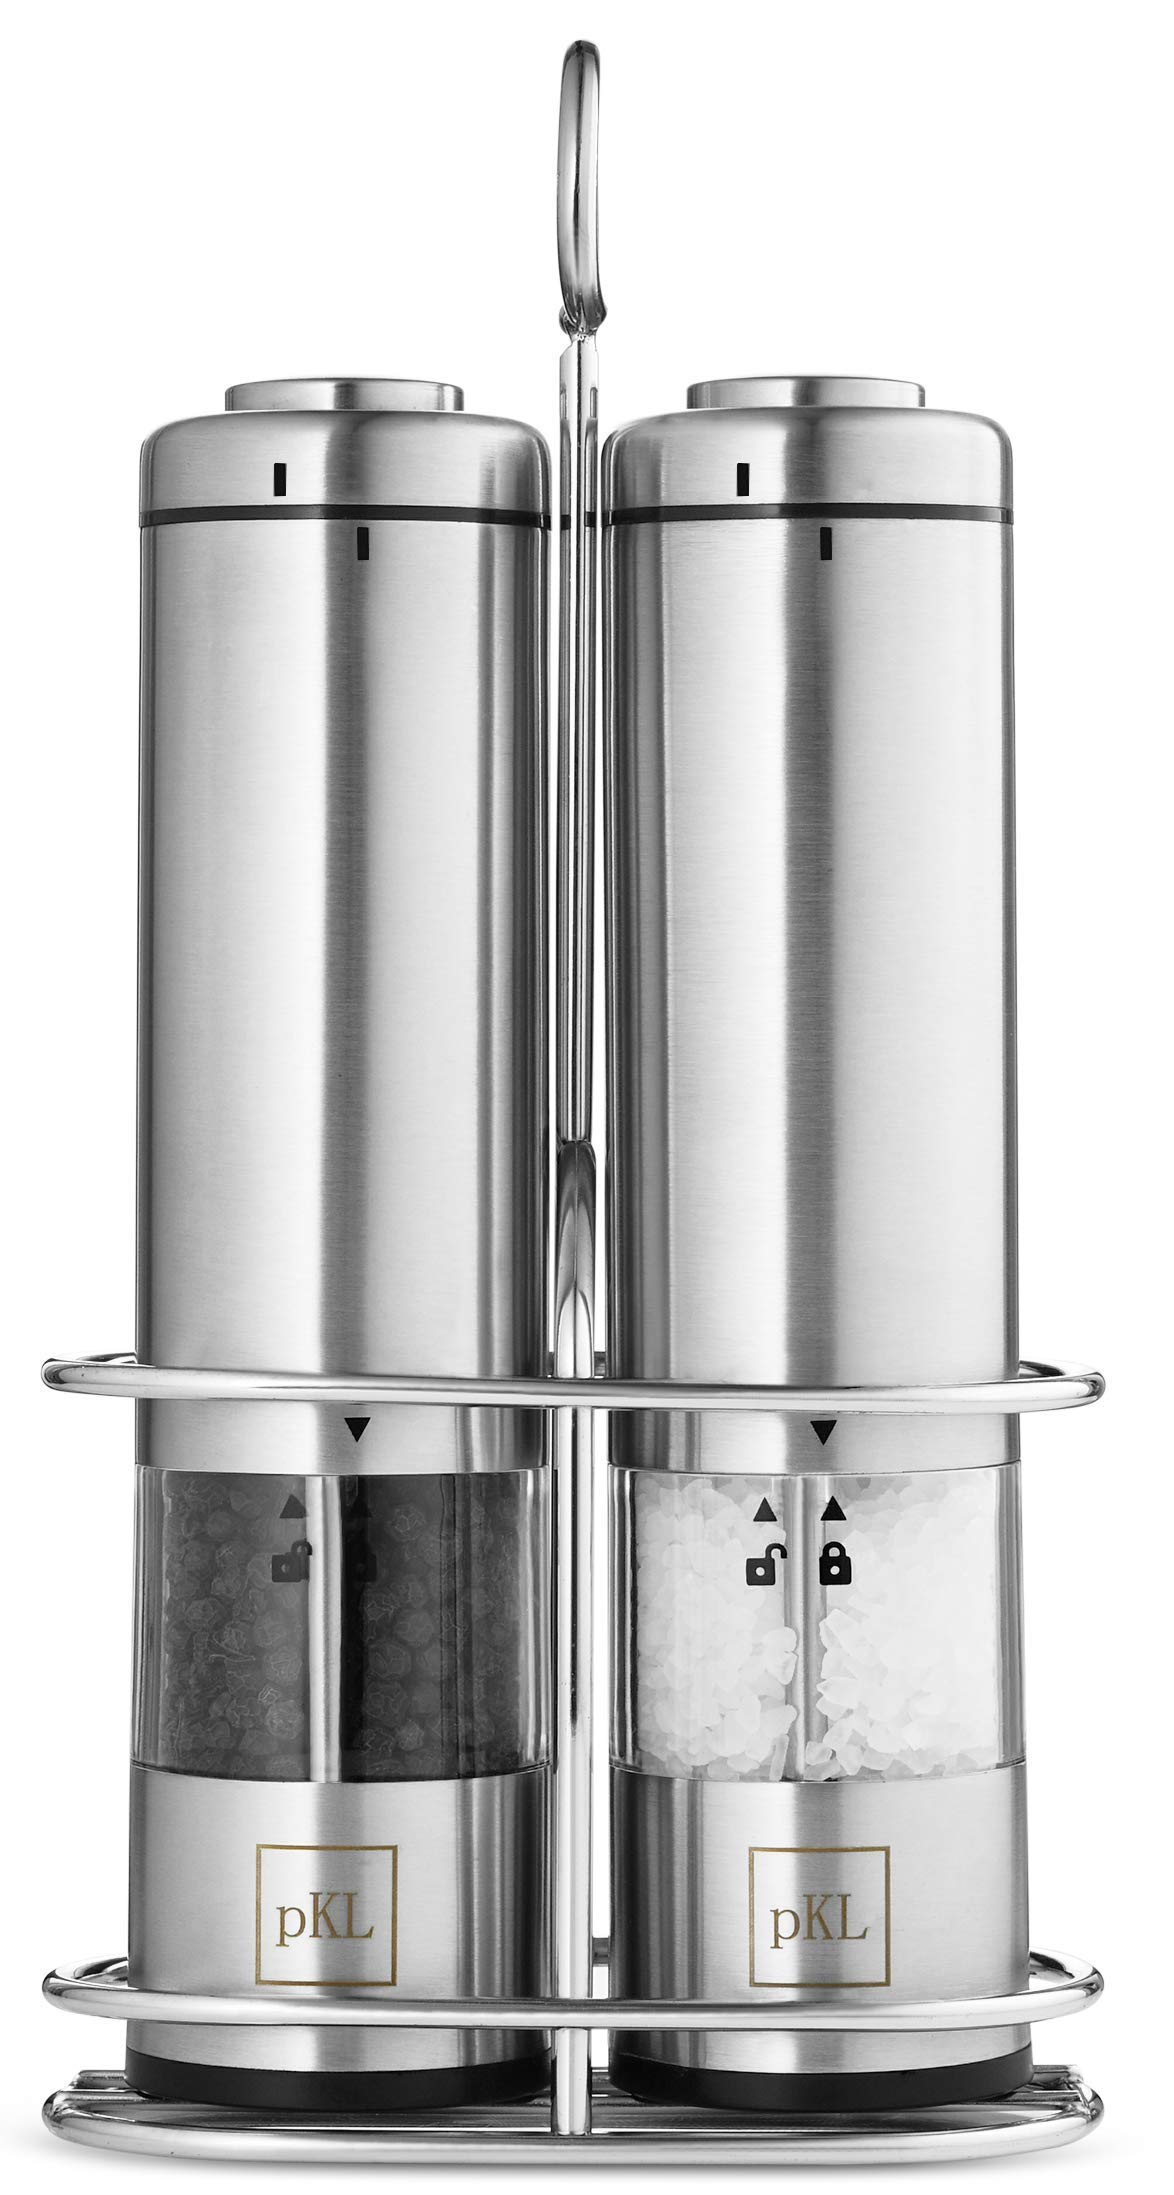 Pro Kitchen Life Battery Operated Salt and Pepper Grinder Set - Pack of 2 Mills - Durable Stainless Steel with Holder Tray - Adjustable Ceramic Coarseness with LED Light and Caps at Bottom by PKL - Pro Kitchen Life